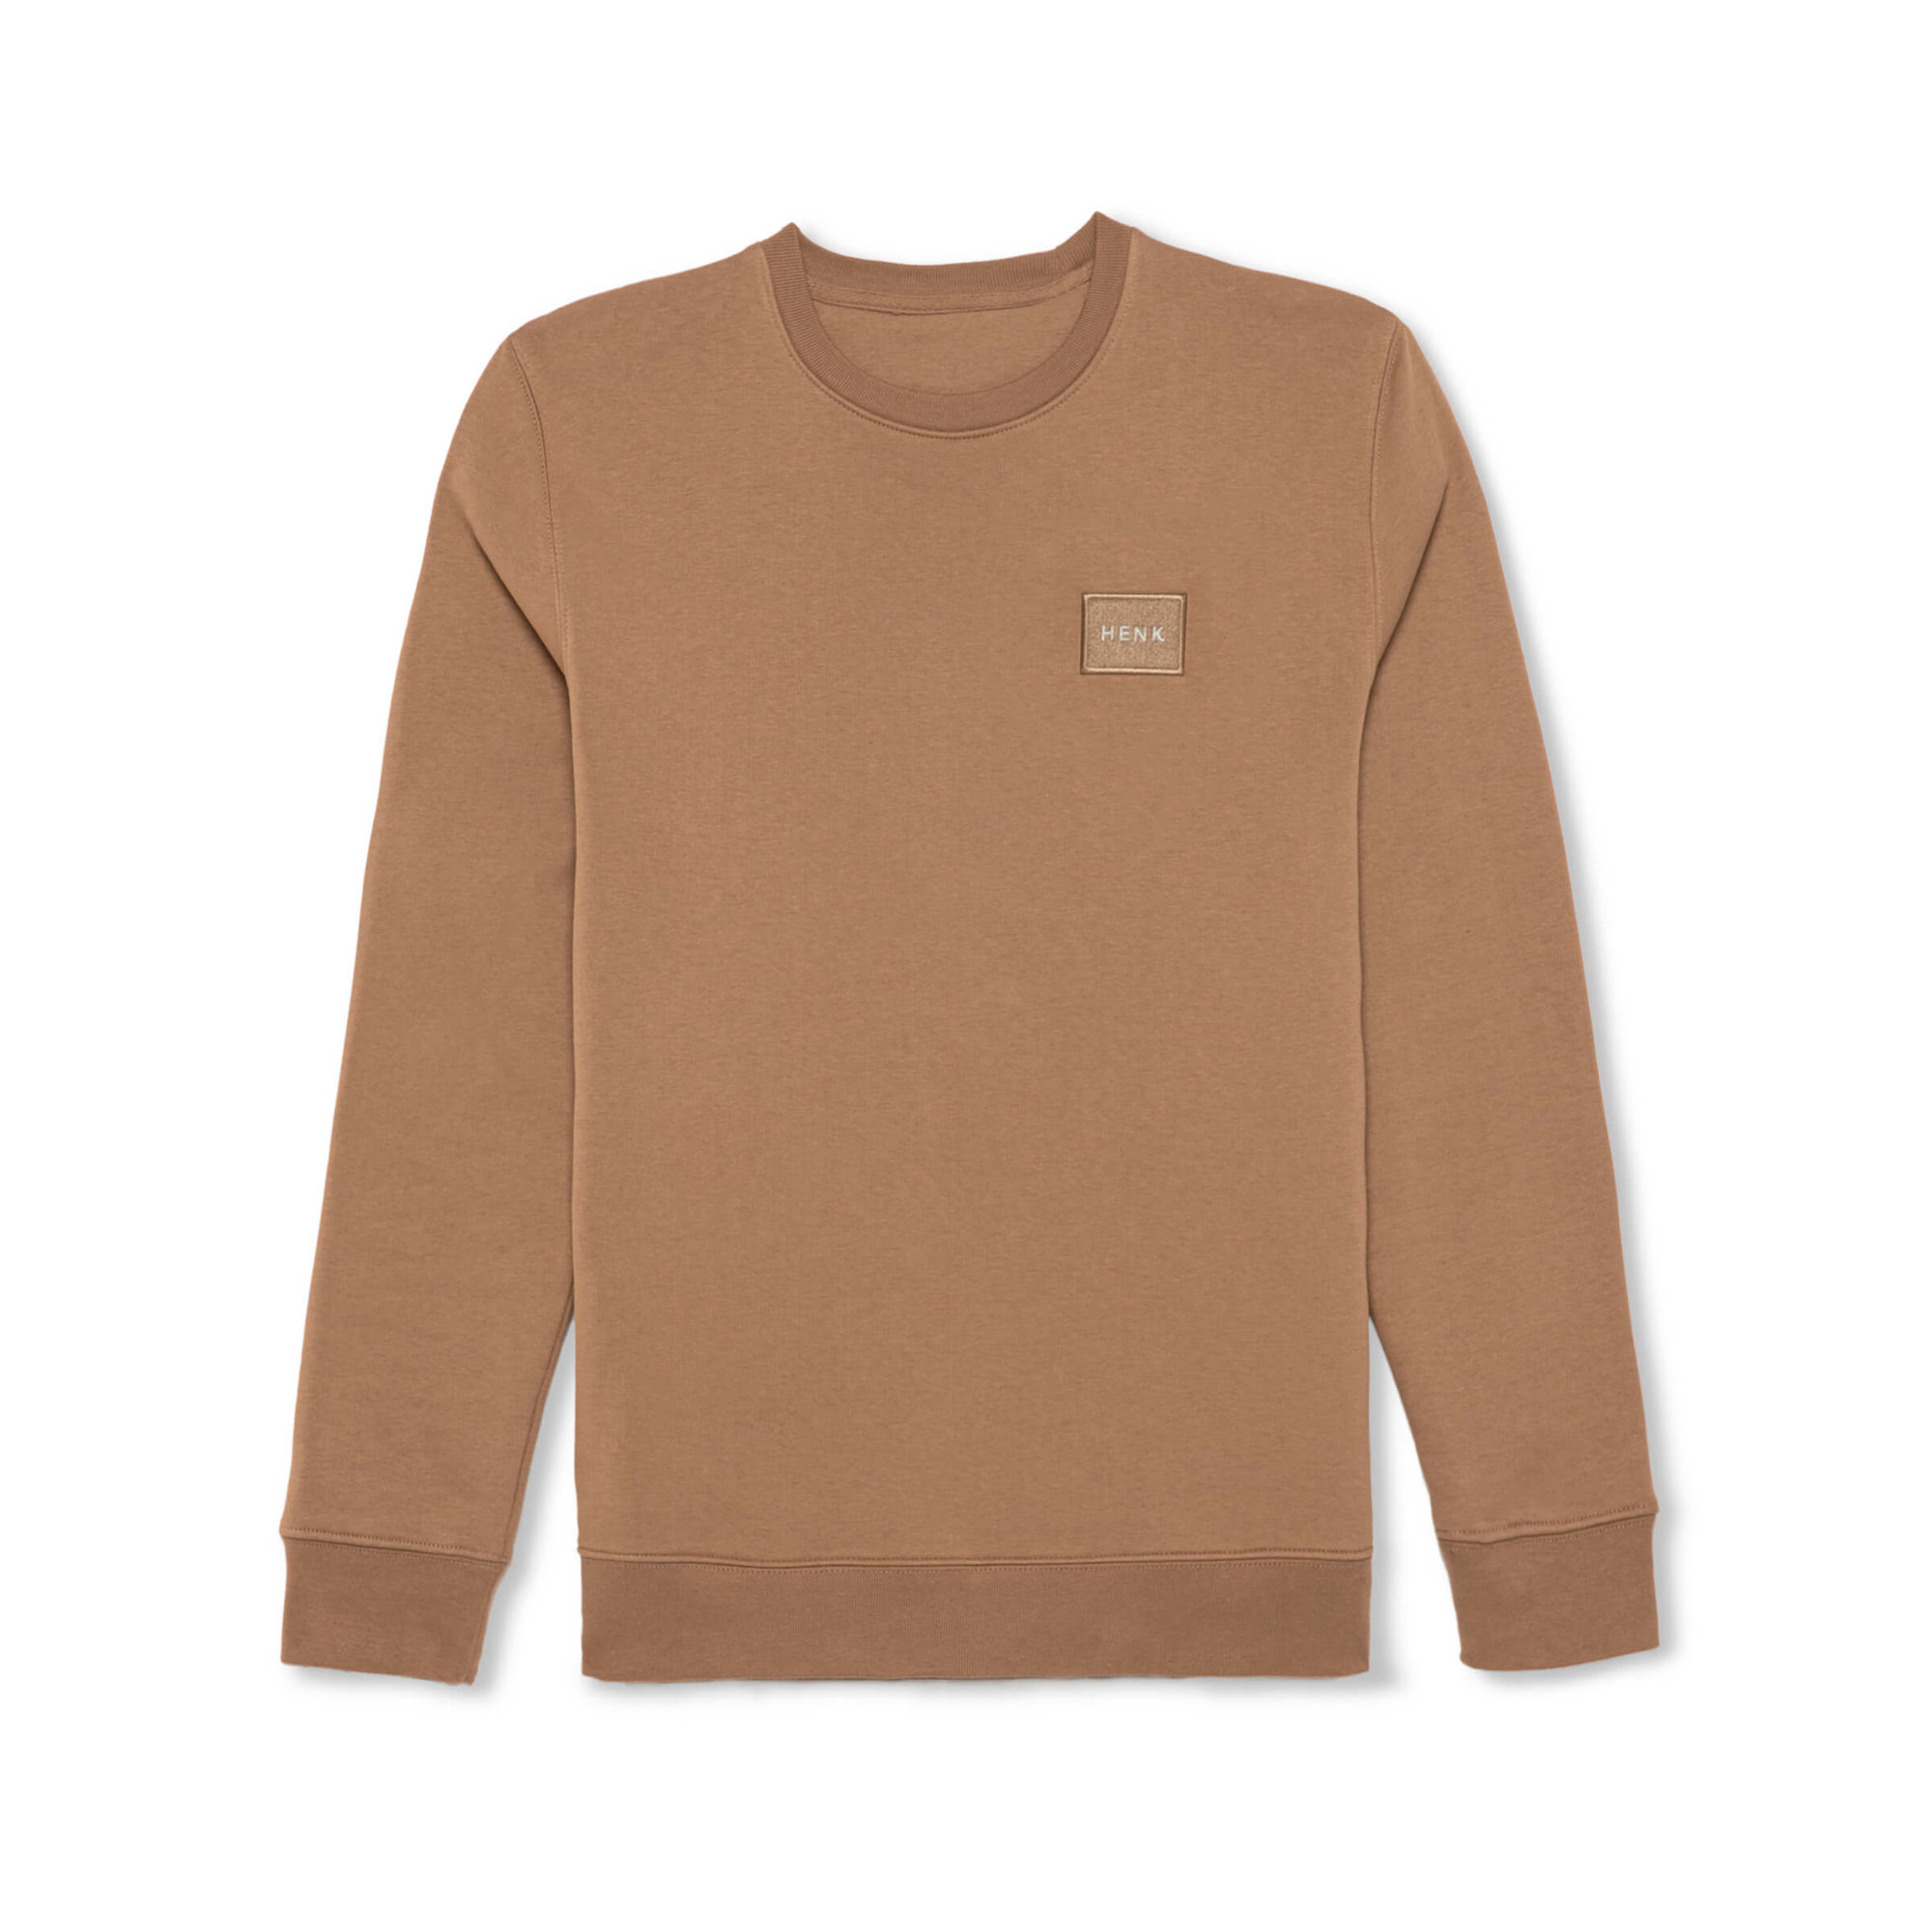 Sweater | Camel | Studio HENK | Setting6